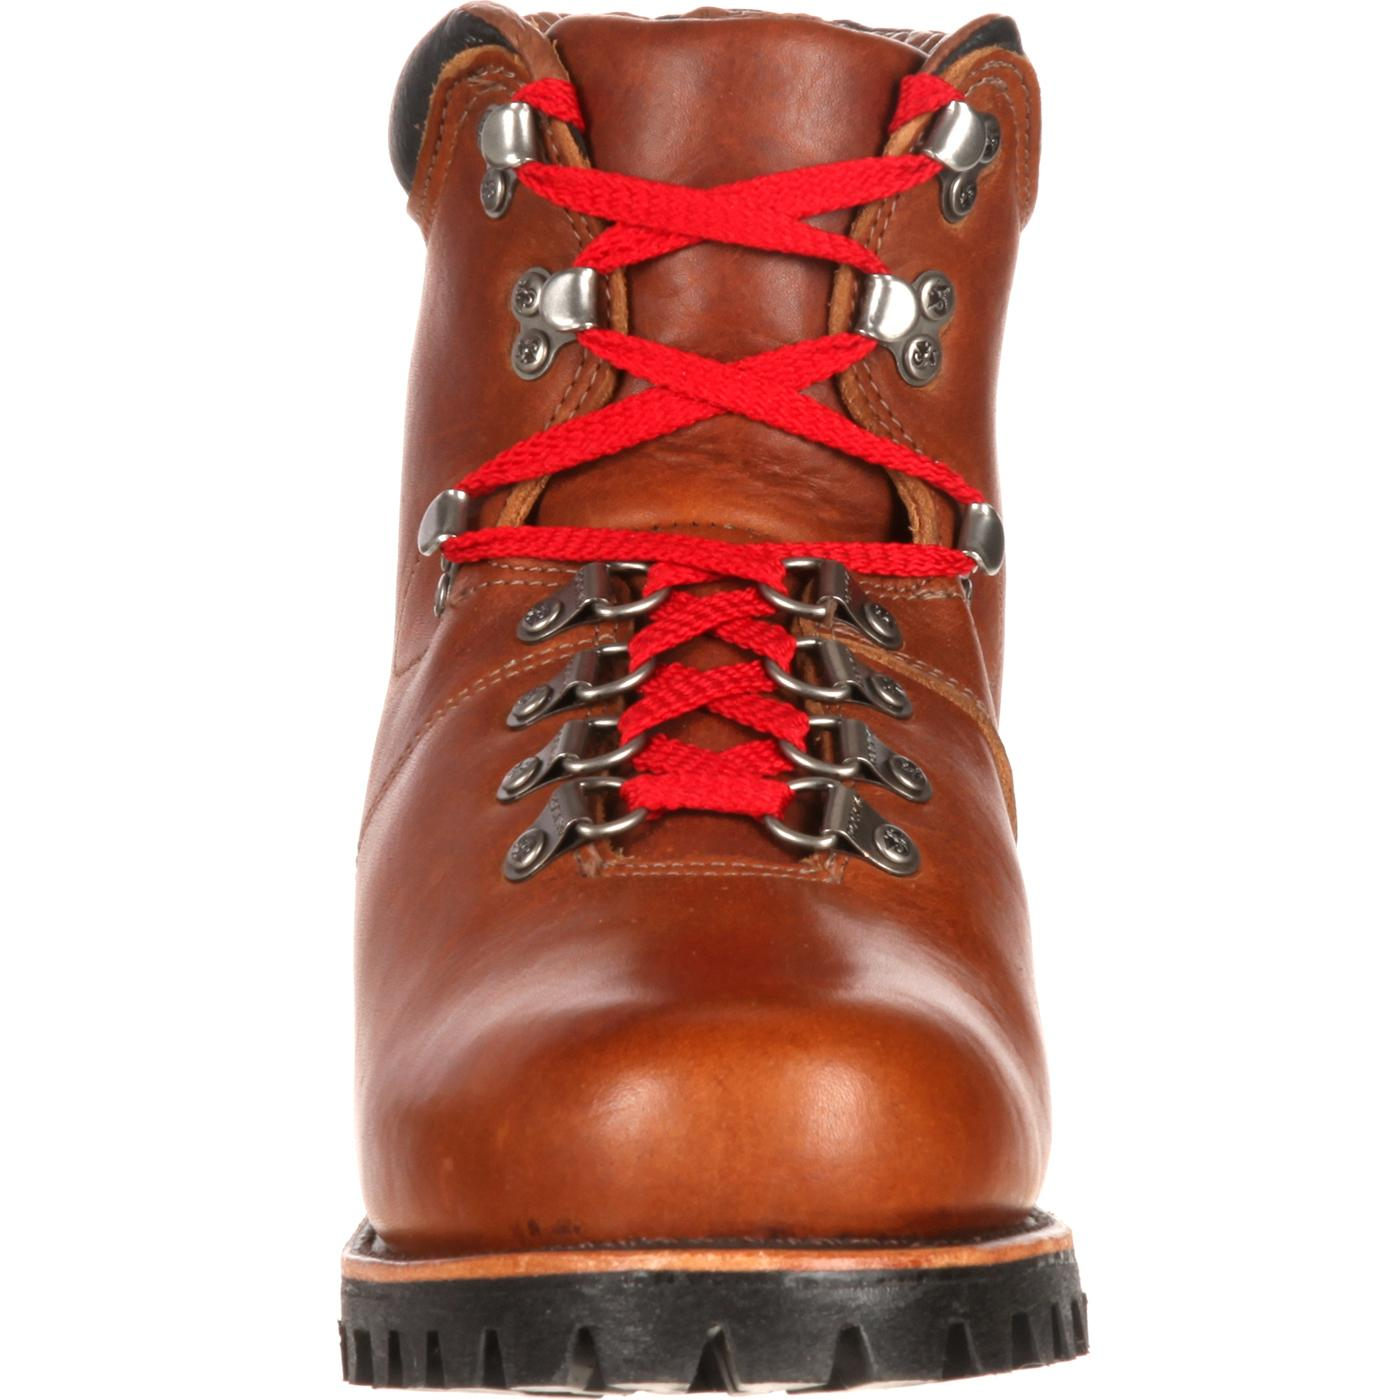 1ddd254be113 Rocky Boots Traditional Heritage Throwback Red Laces Hiker